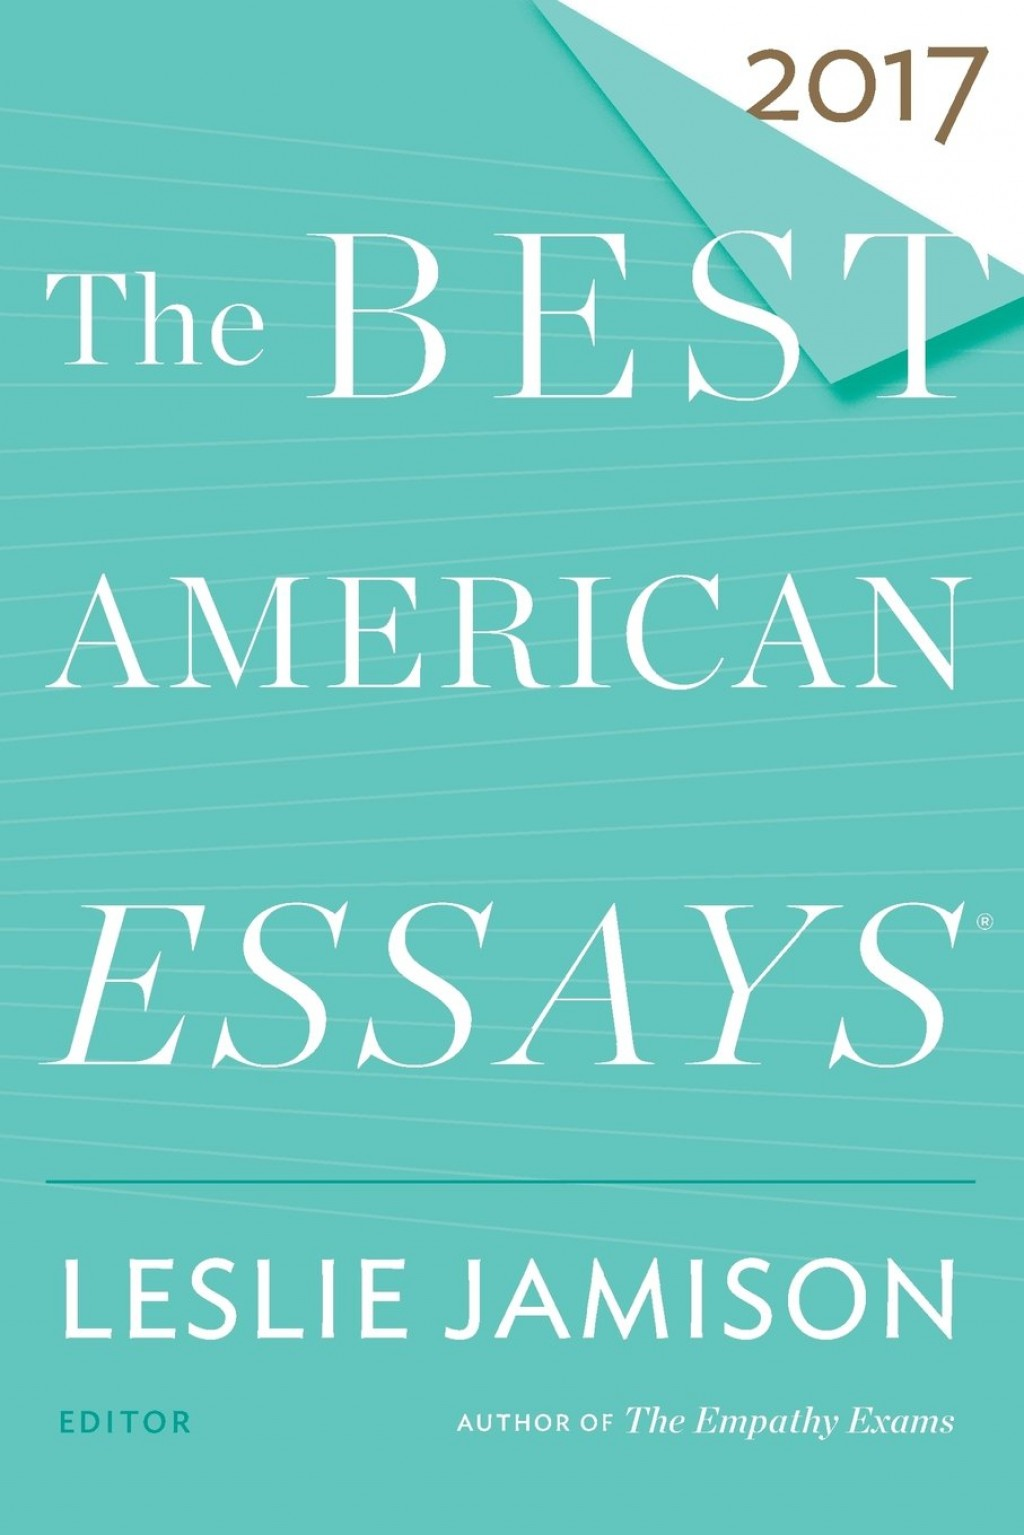 002 Essay Example 61tzl Nruvl The Best American Essays Phenomenal 2016 Pdf Download Audiobook Sparknotes Large